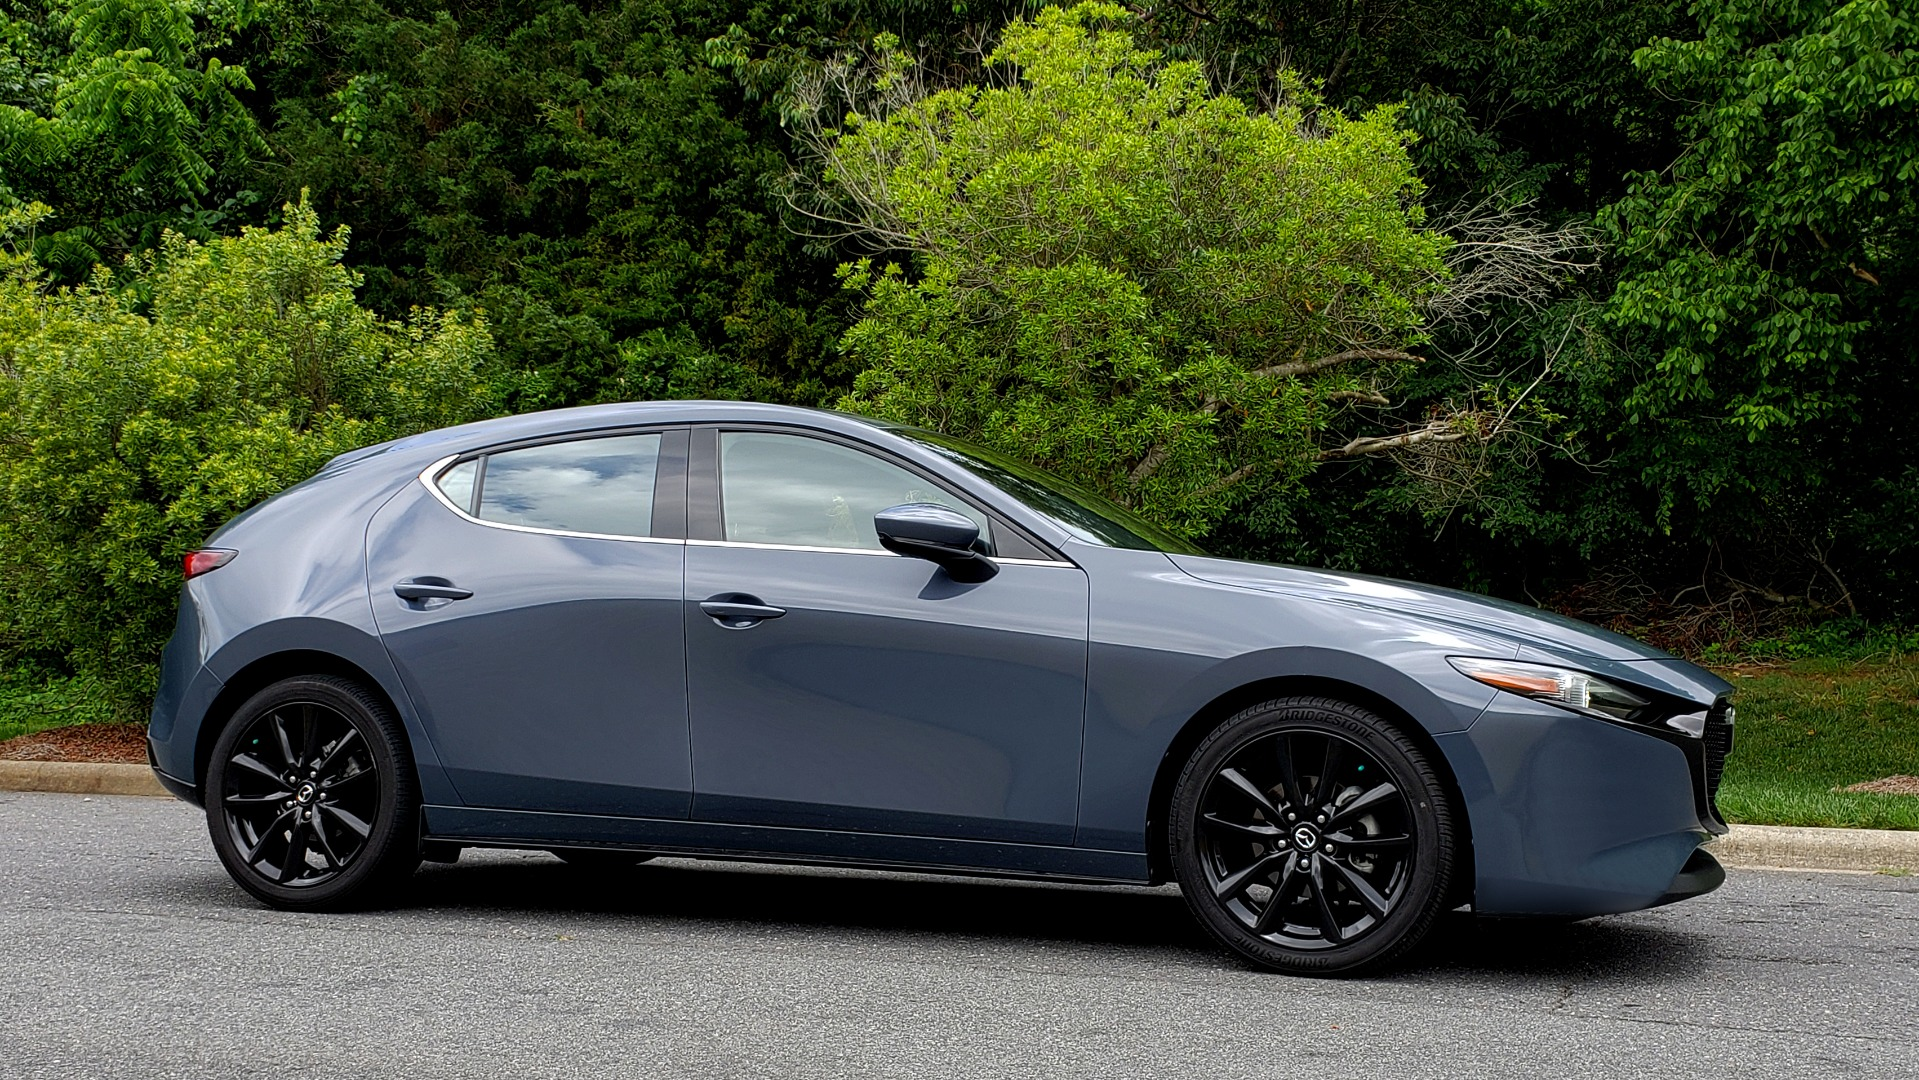 Used 2019 Mazda MAZDA3 HATCHBACK PREMIUM PKG / AUTO / 18IN BLACK ALLOY WHEELS / BOSE / LEATHER for sale Sold at Formula Imports in Charlotte NC 28227 5